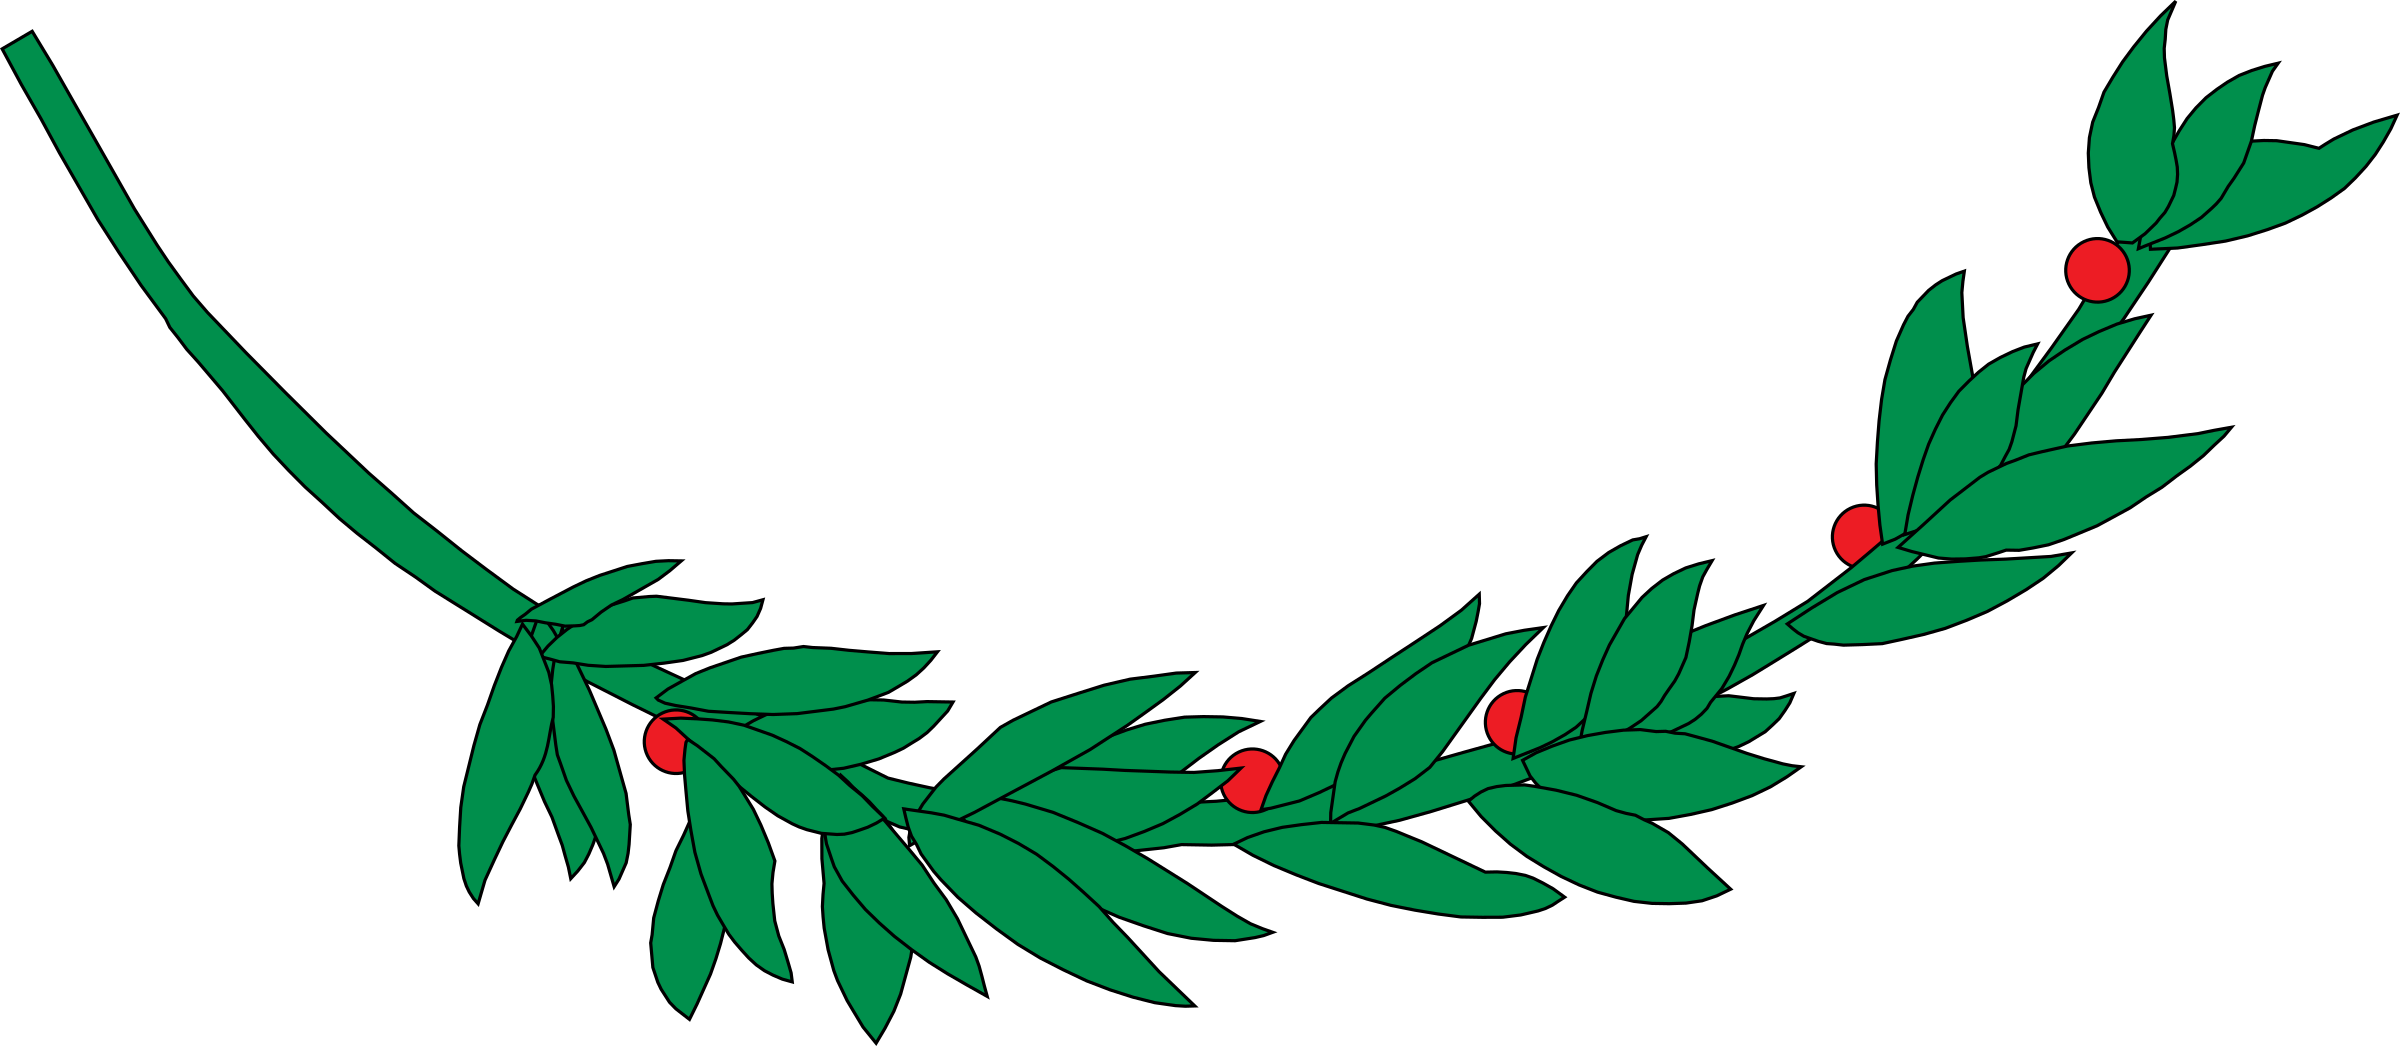 Laurel tree clipart banner freeuse download Laurel branch 8 Icons PNG - Free PNG and Icons Downloads banner freeuse download